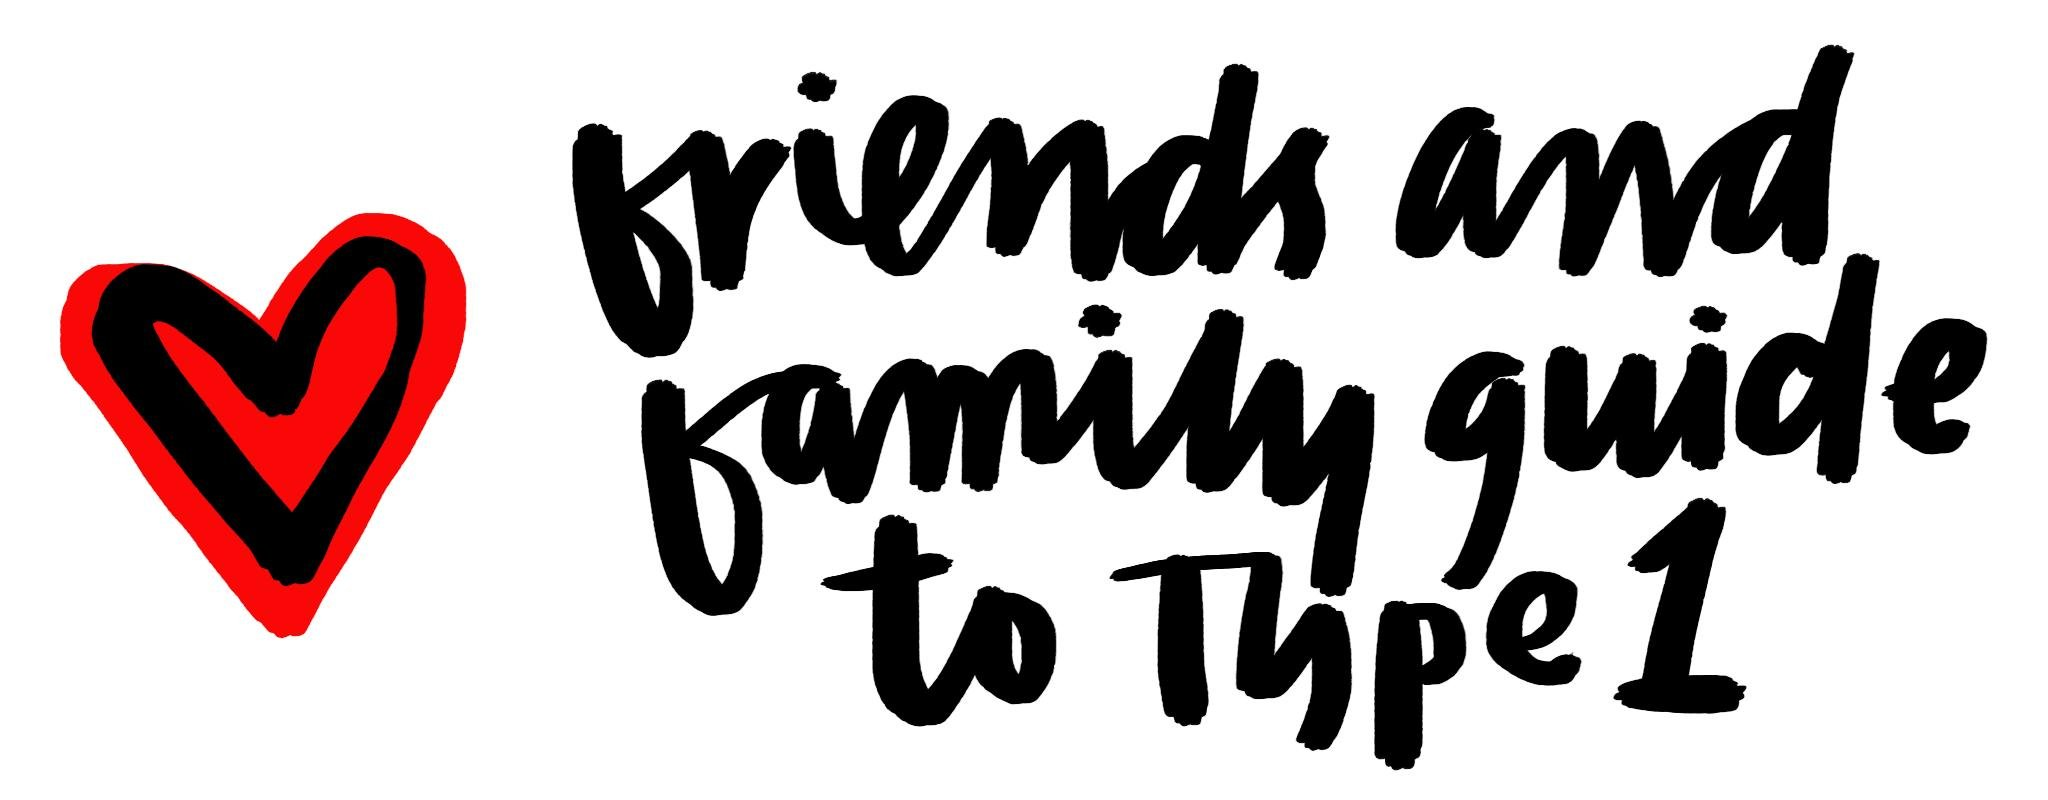 The Friends & Family Guide To Type 1 Diabetes